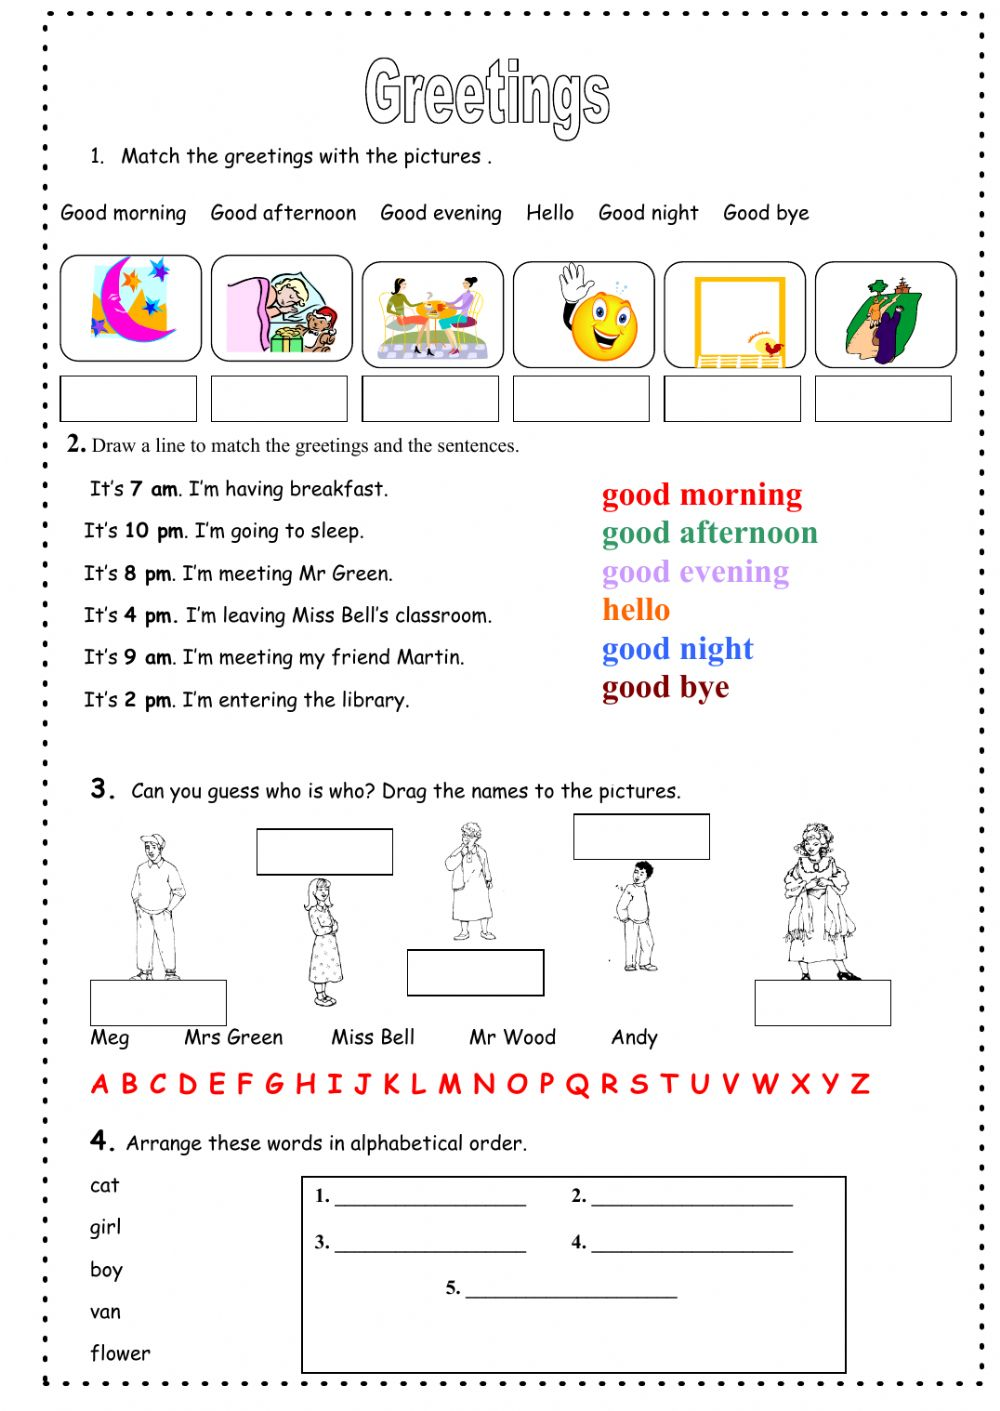 Greetings Interactive Worksheet